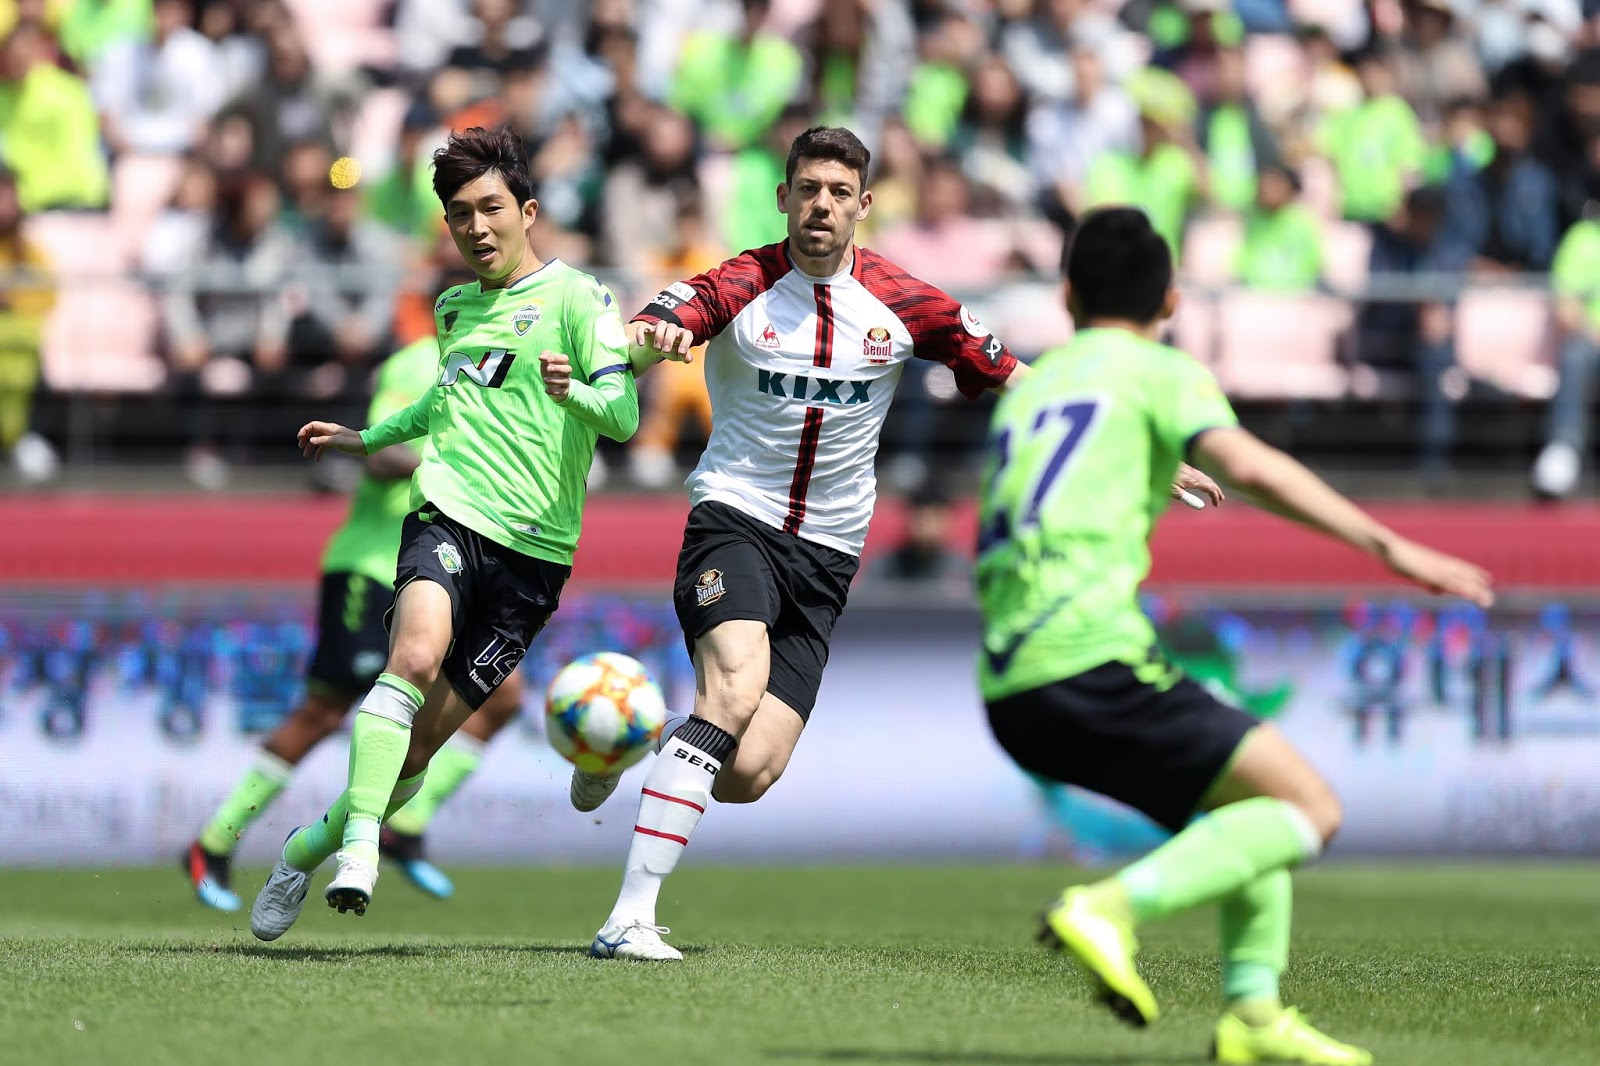 Preview: FC Seoul vs Jeonbuk Hyundai Motors K League 1 Round 22